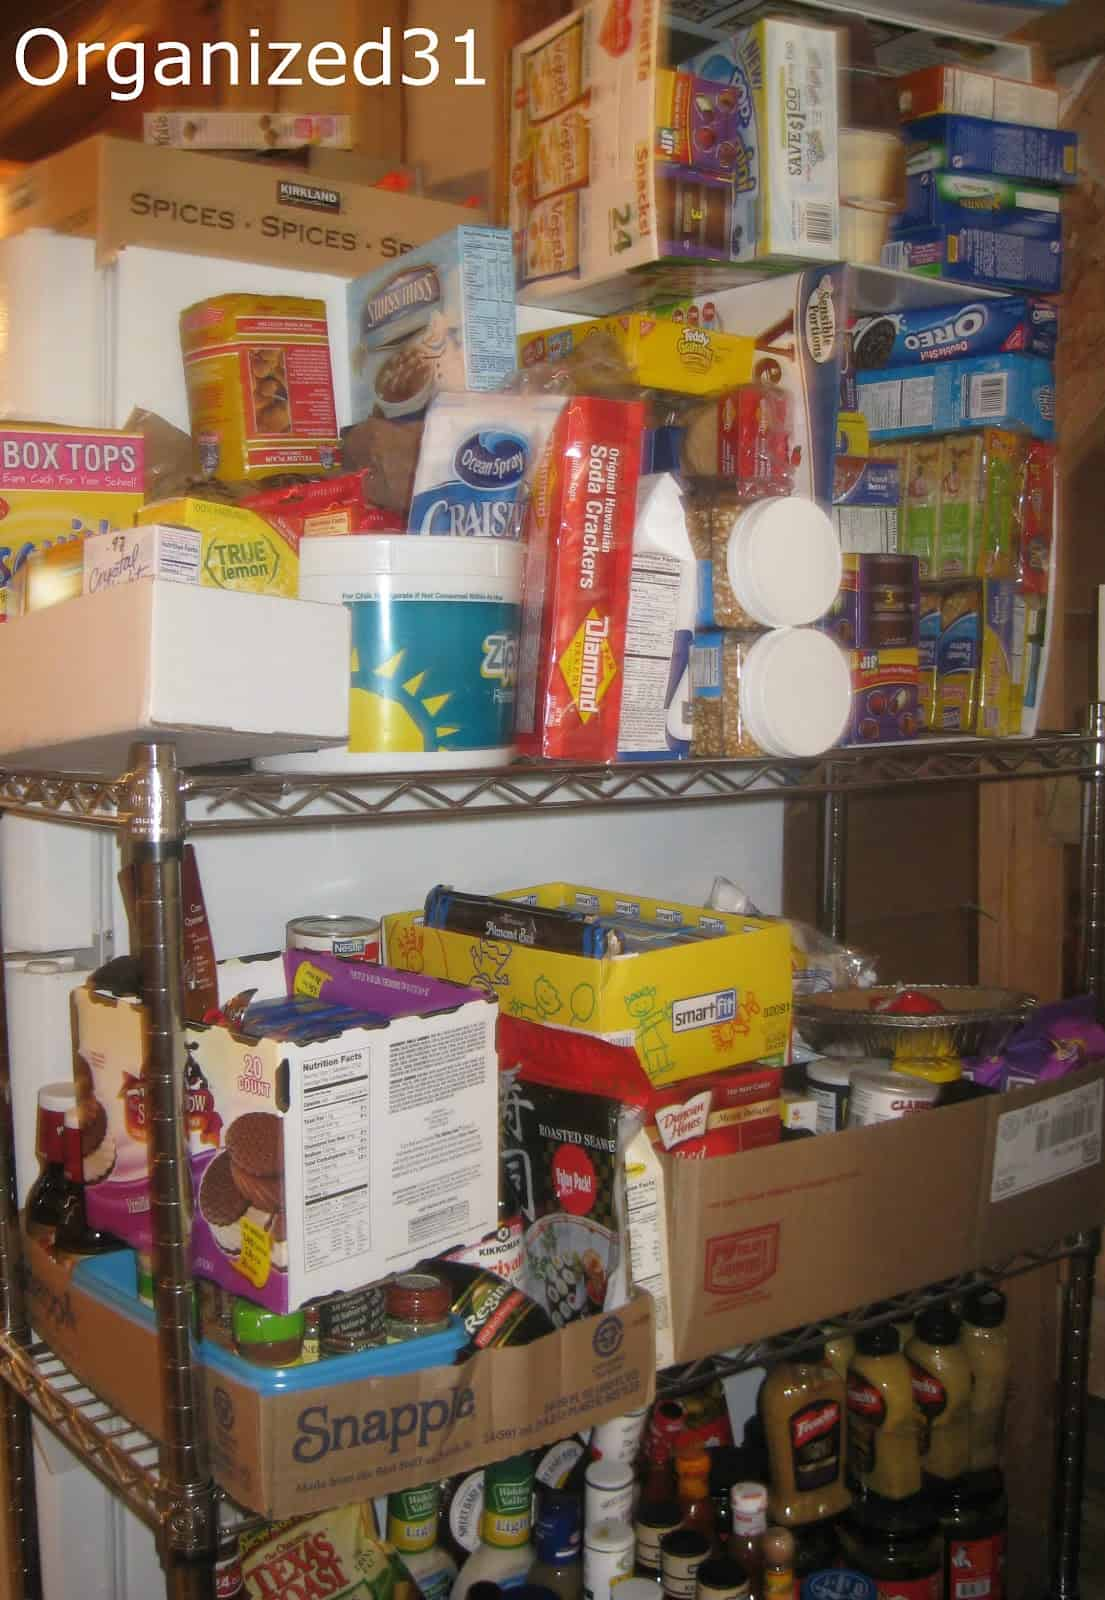 organize your pantry by using up the food you have organized 31